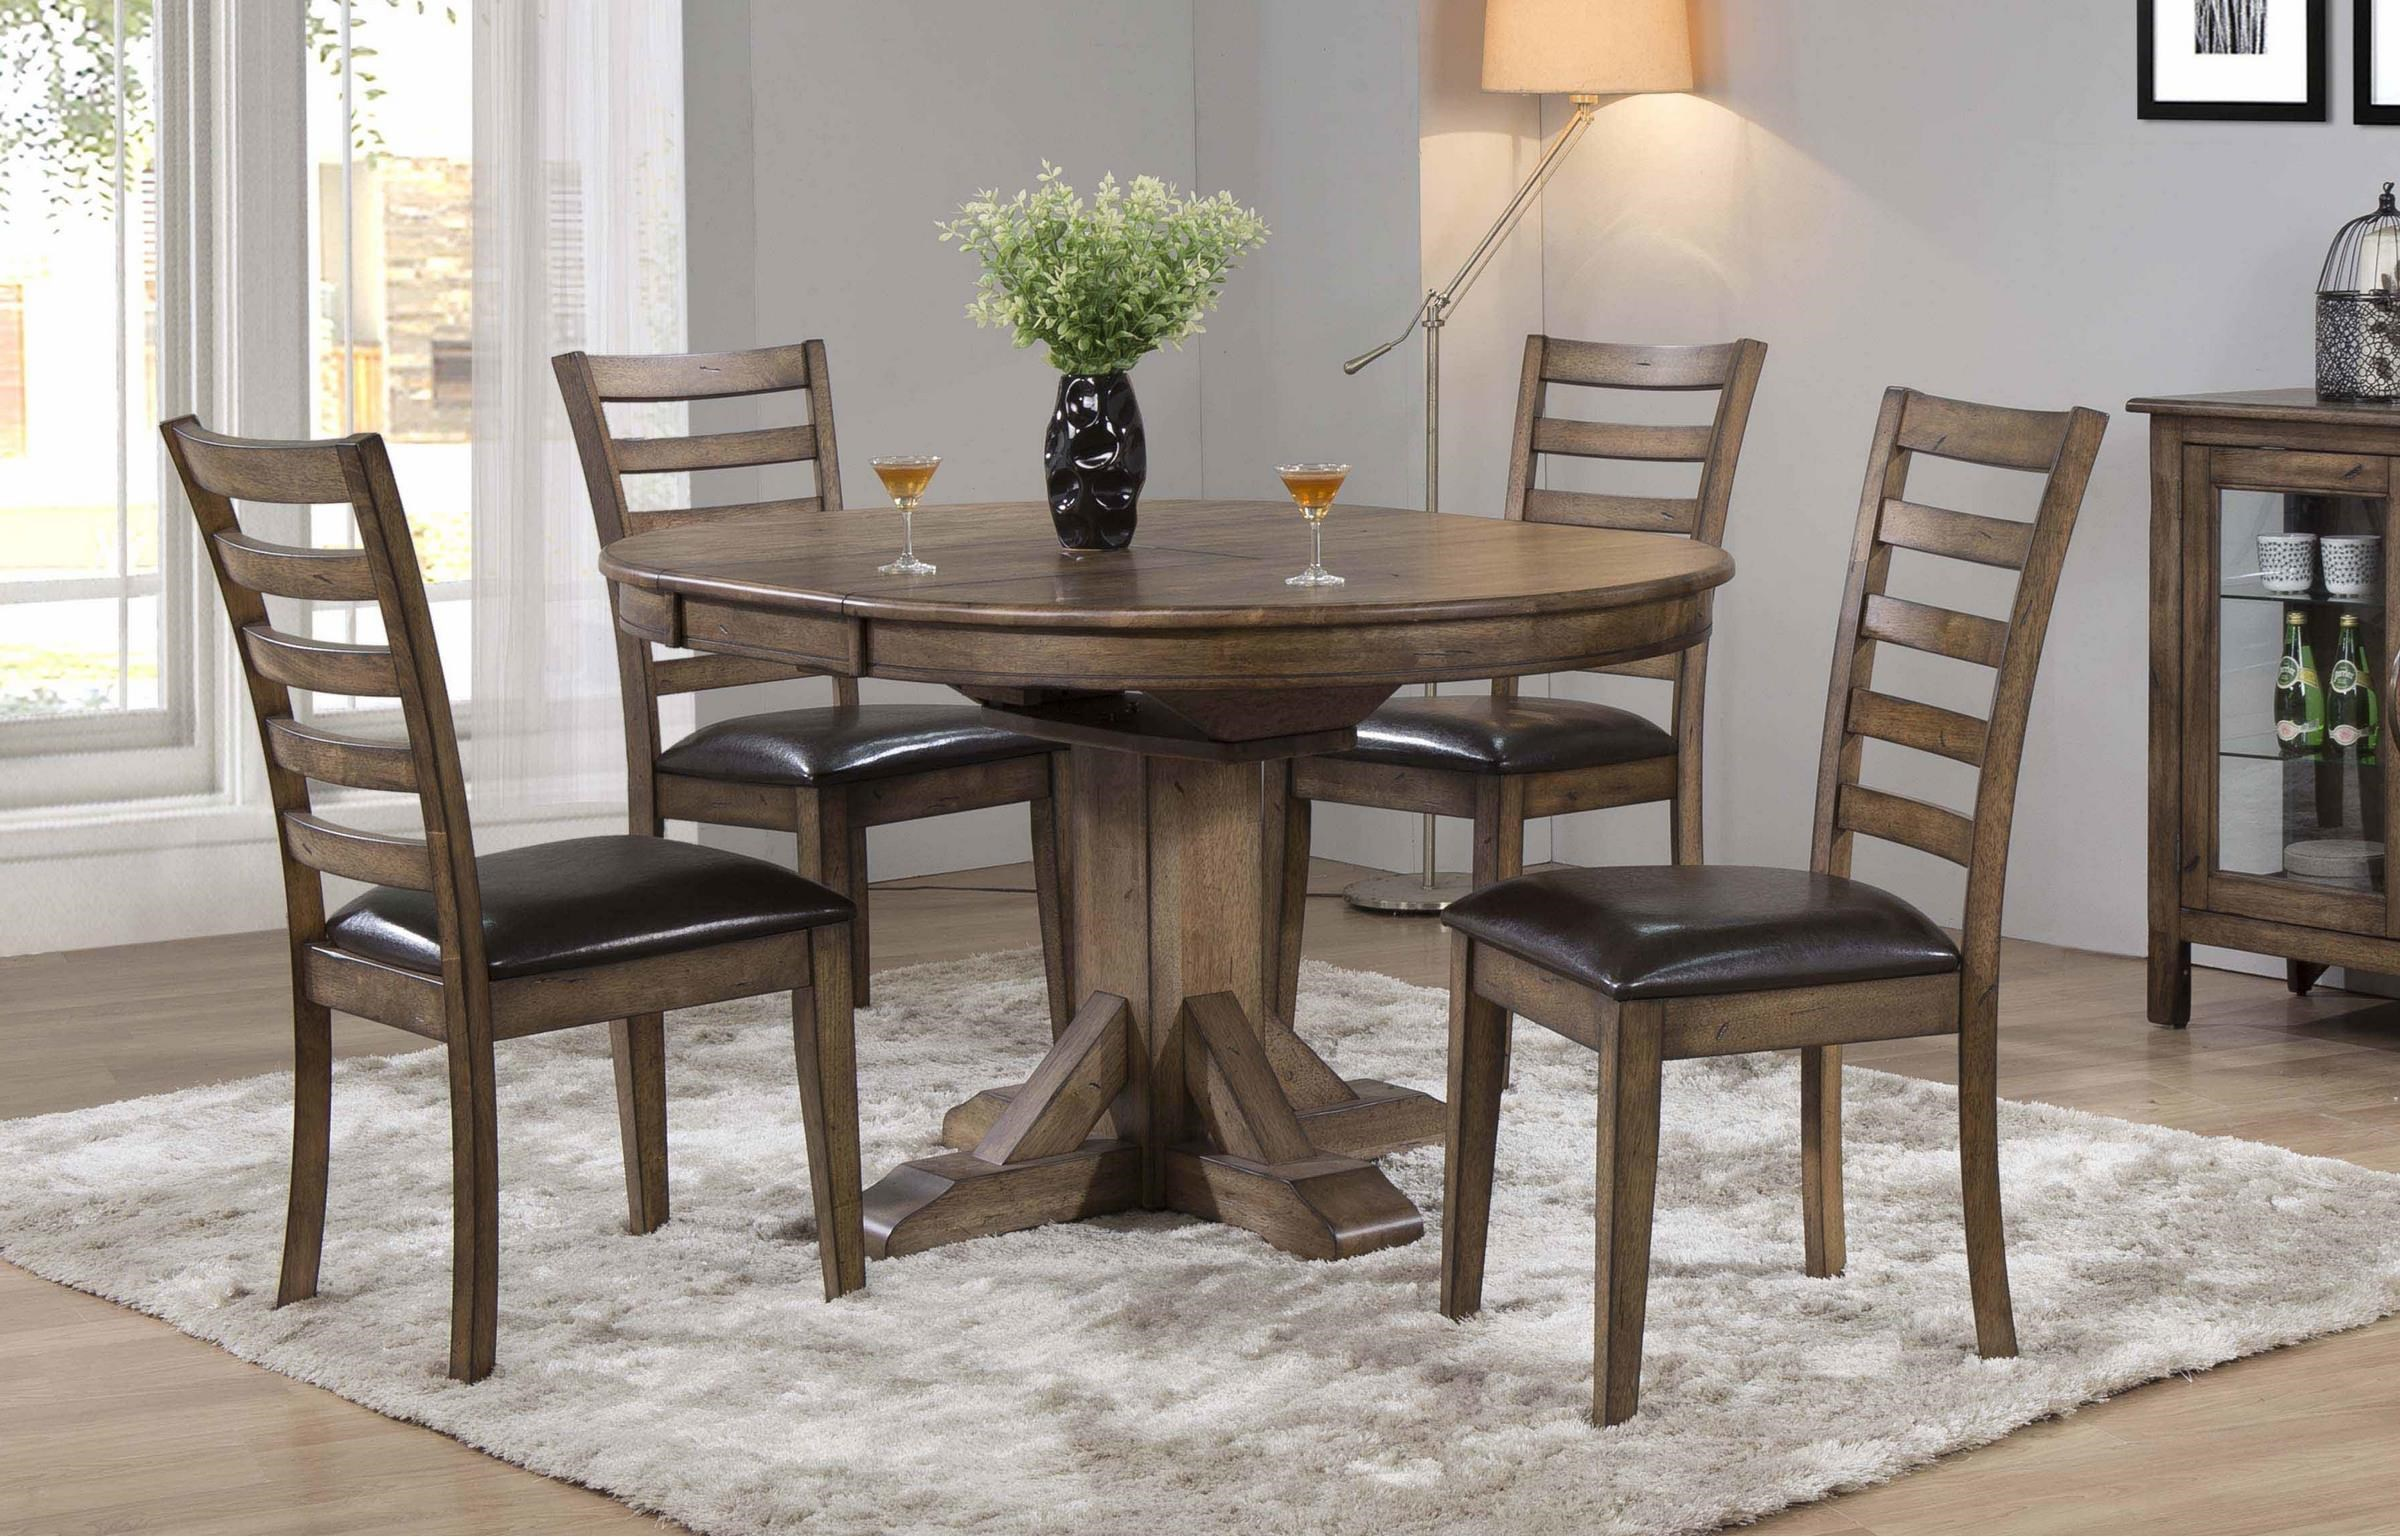 Newport 5 Pc. Dining Set at Bennett's Furniture and Mattresses